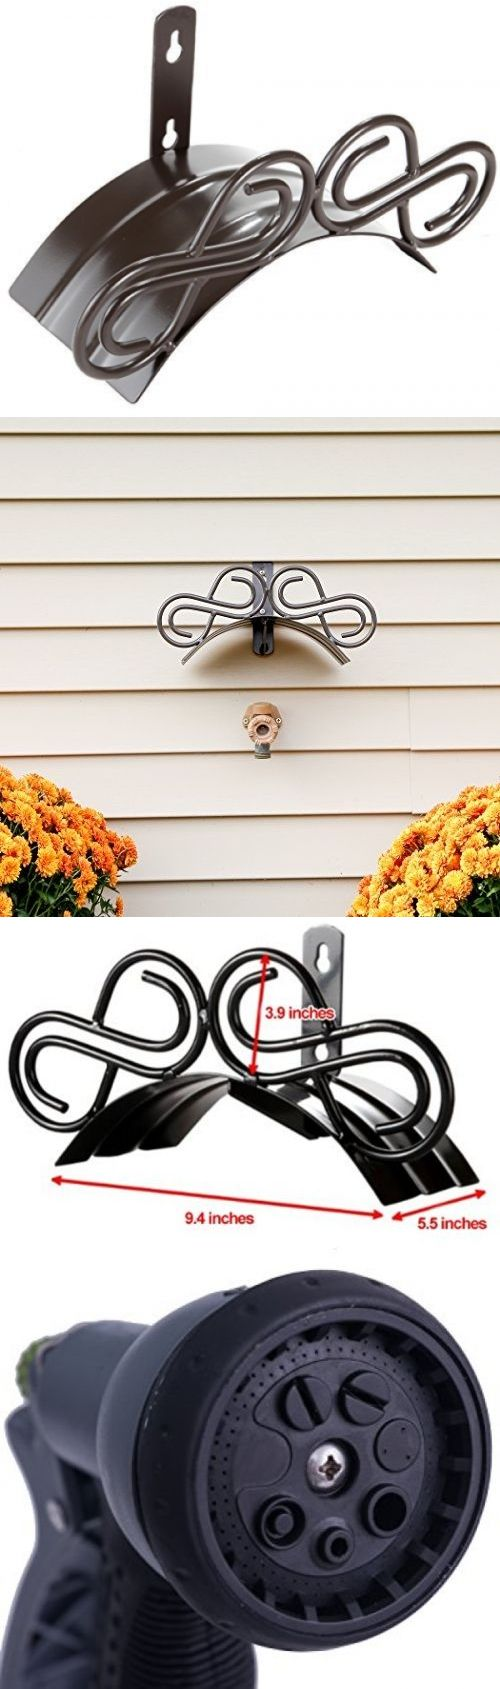 Hose reels and storage 46435 decorative garden hose hanger wall hose reels and storage 46435 decorative garden hose hanger wall mount holder including spray amipublicfo Image collections